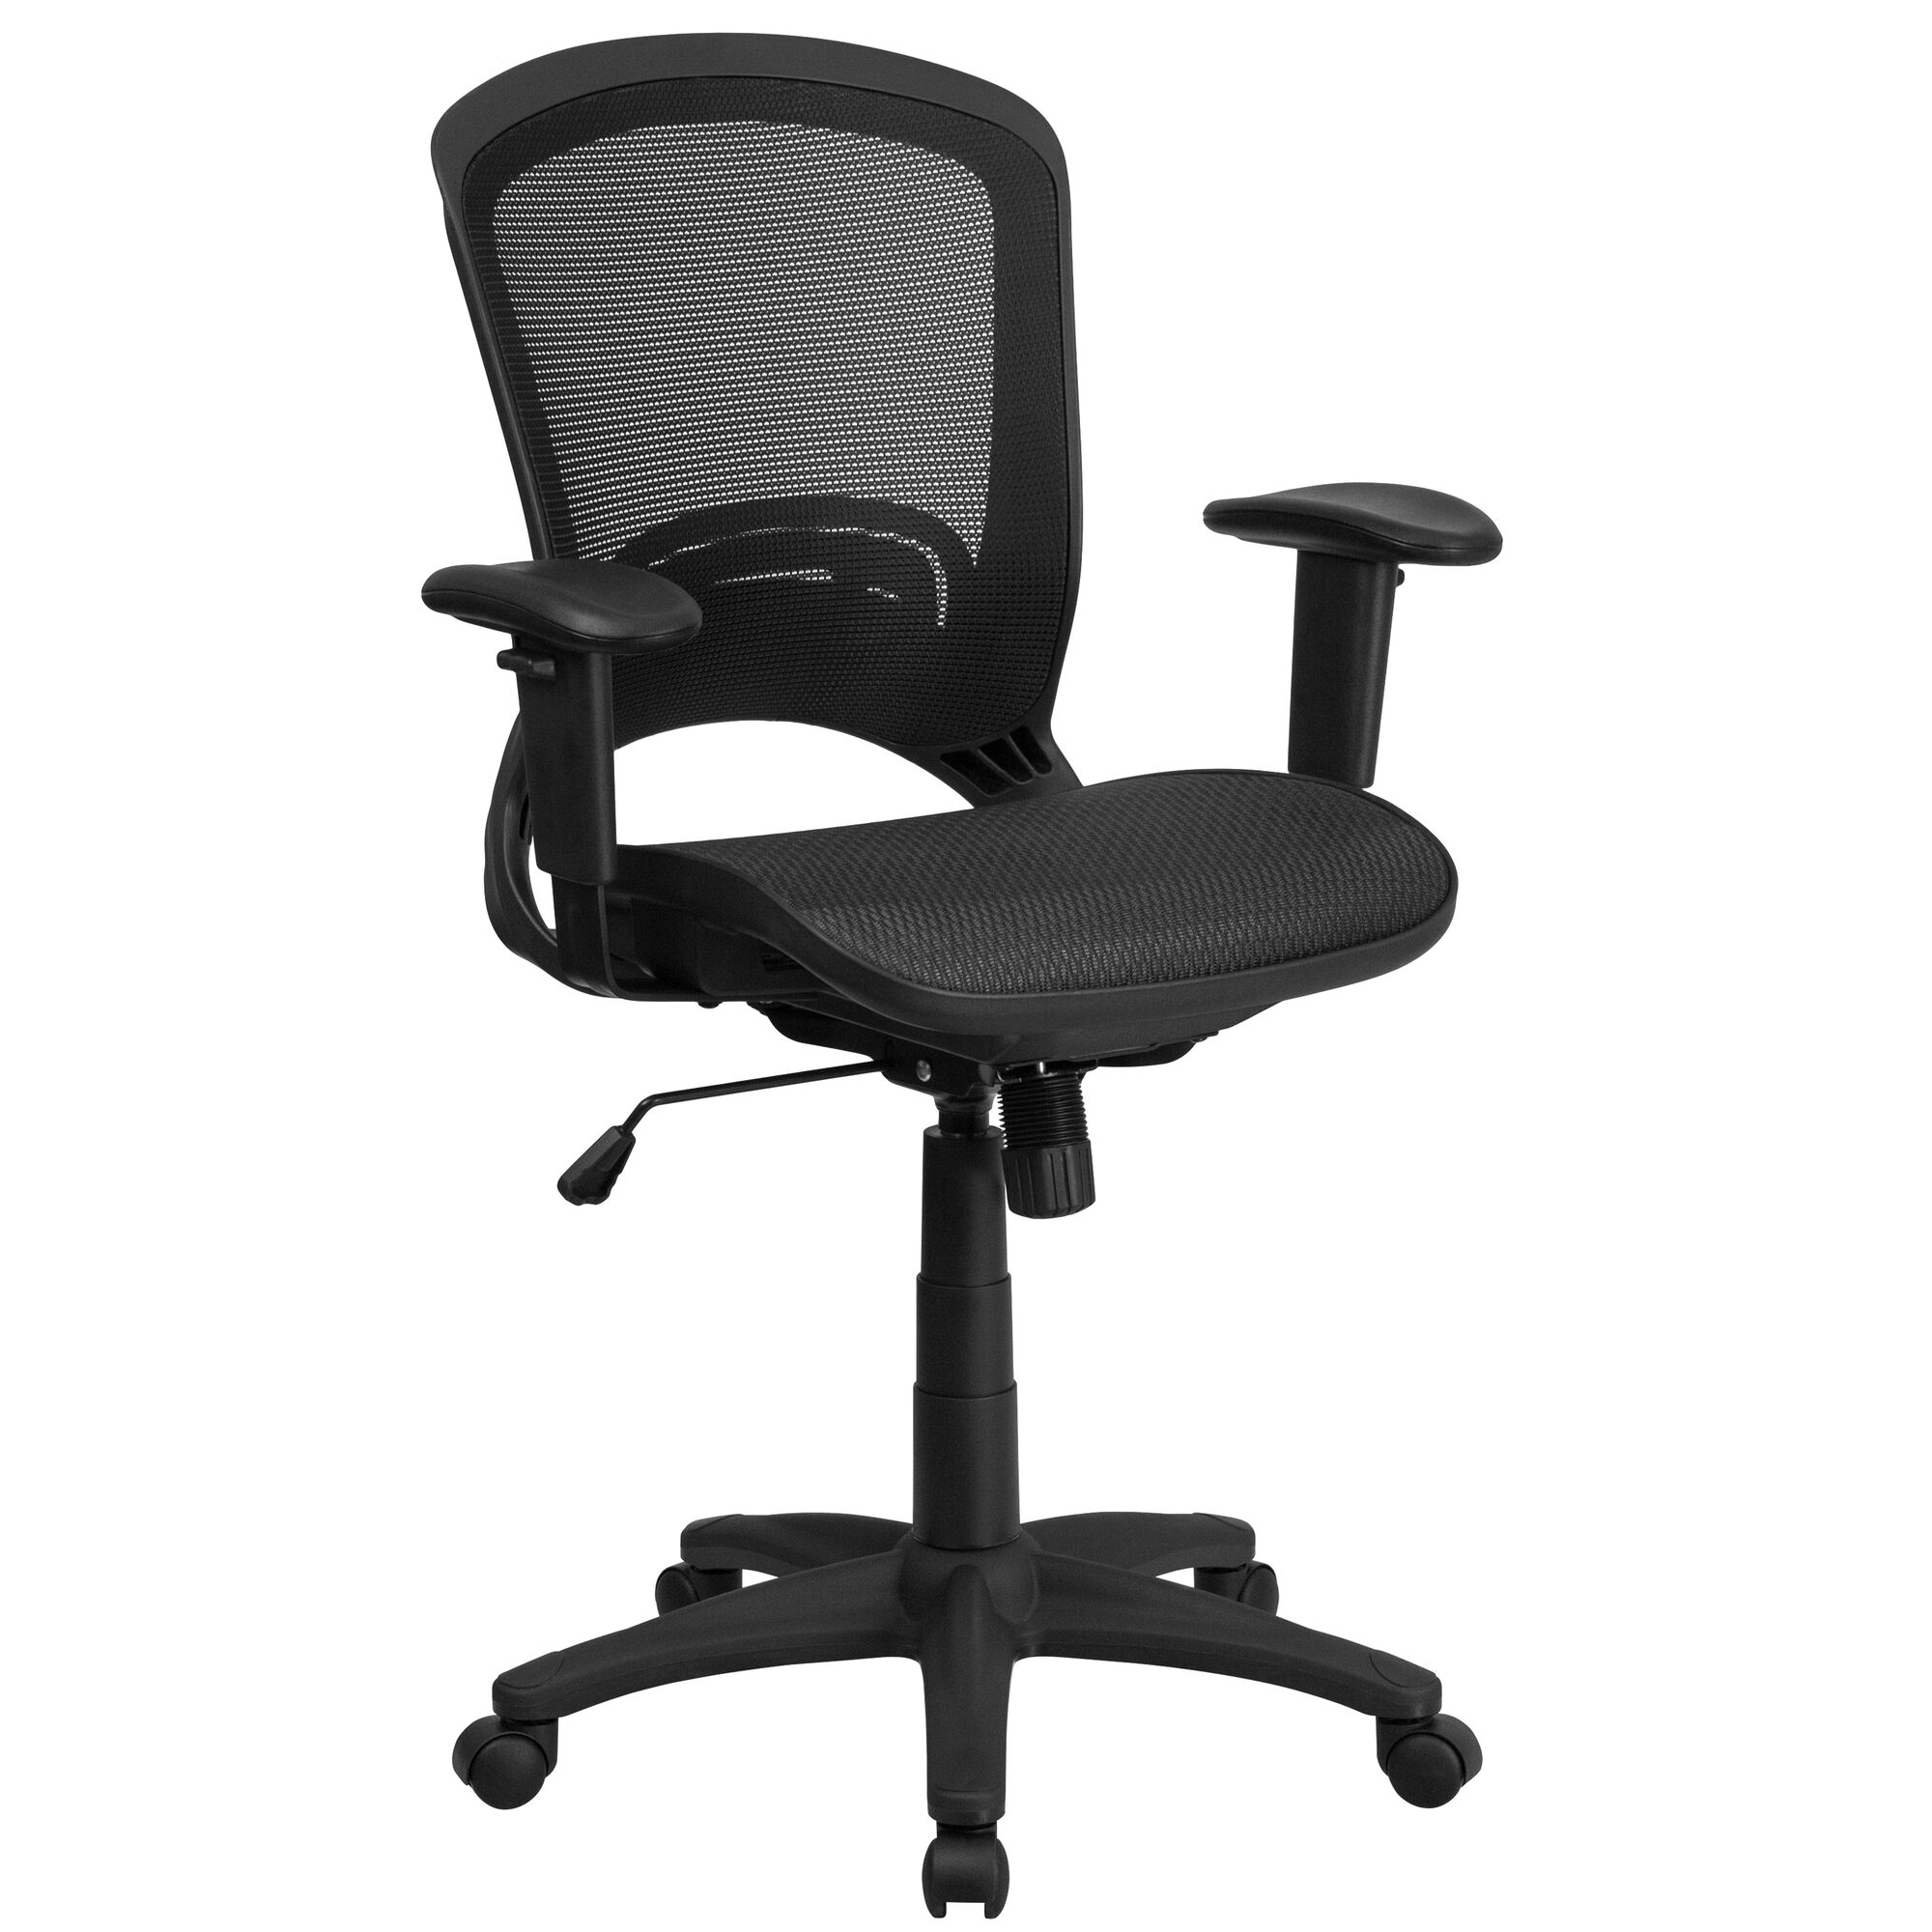 Fine Mid Back Transparent Black Mesh Executive Swivel Office Chair With Adjustable Arms Home Interior And Landscaping Transignezvosmurscom